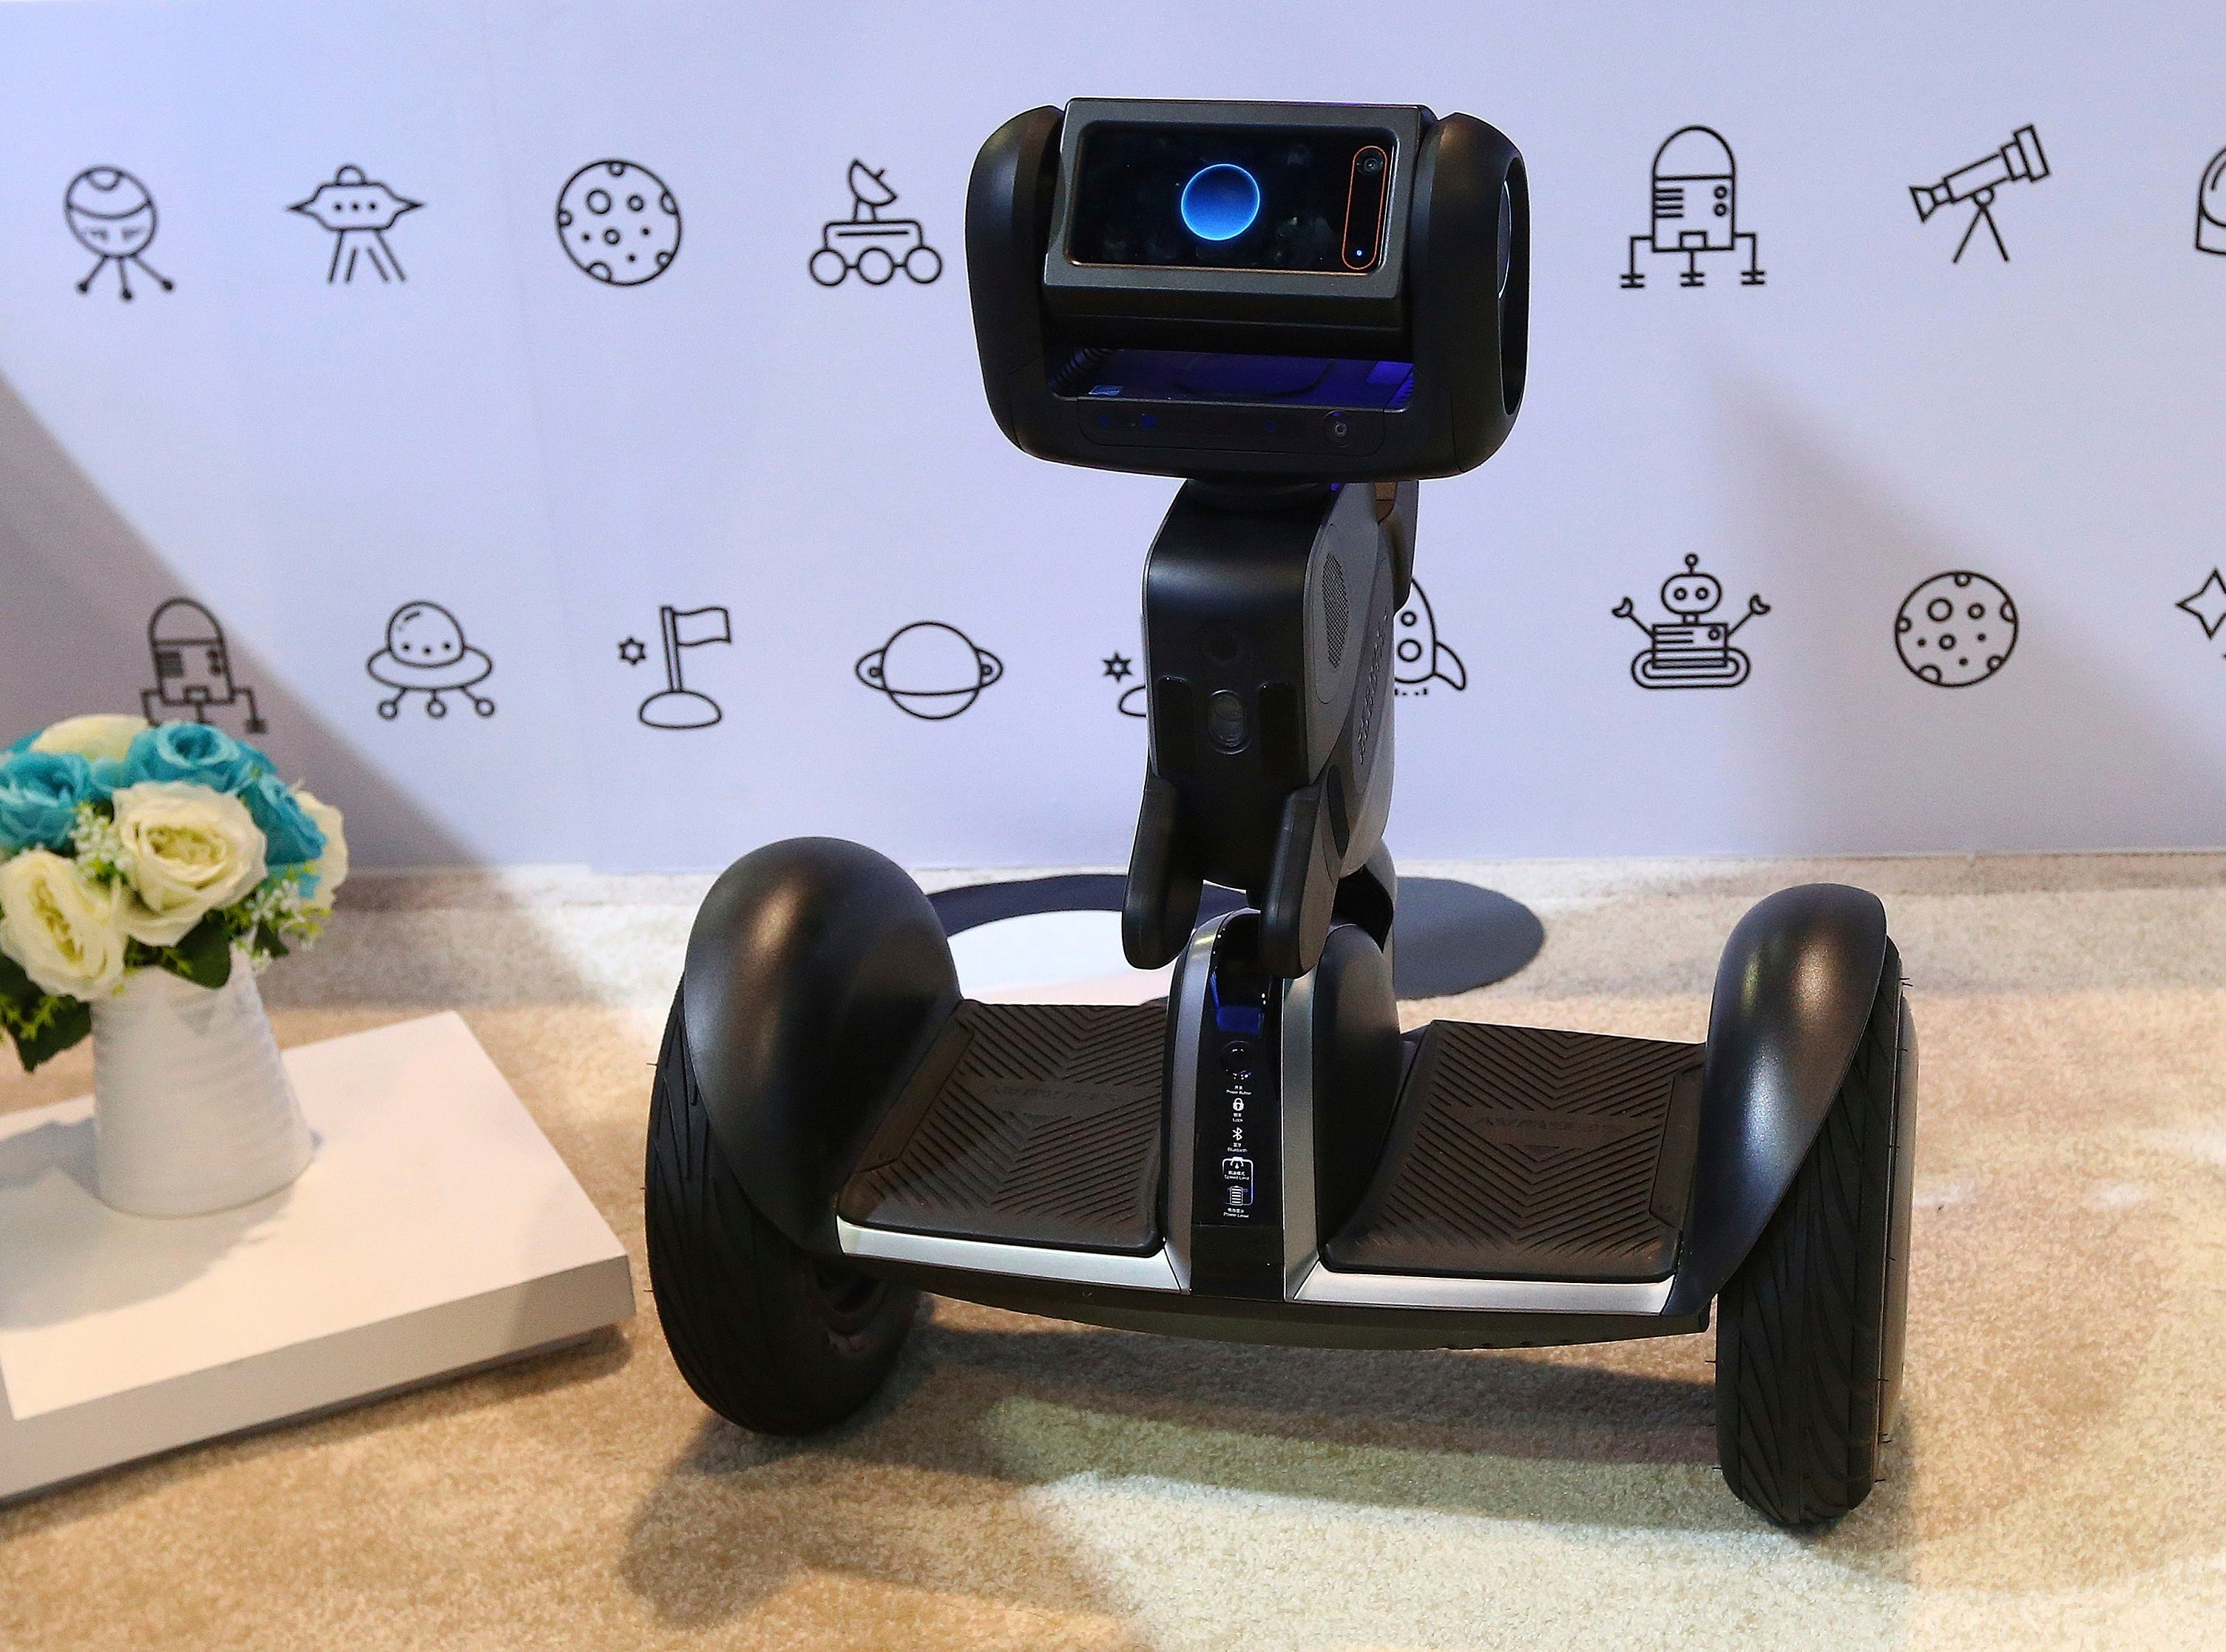 Segway shows off the new Segway-Ninebot Loomo Delivery robot, which is the company's initial autonomous vehicle, designed to revolutionize the short distance delivery industry for take-outs, parcels and goods, according to the company. It was shown at CES International on Tuesday, Jan. 8, 2019, in Las Vegas.